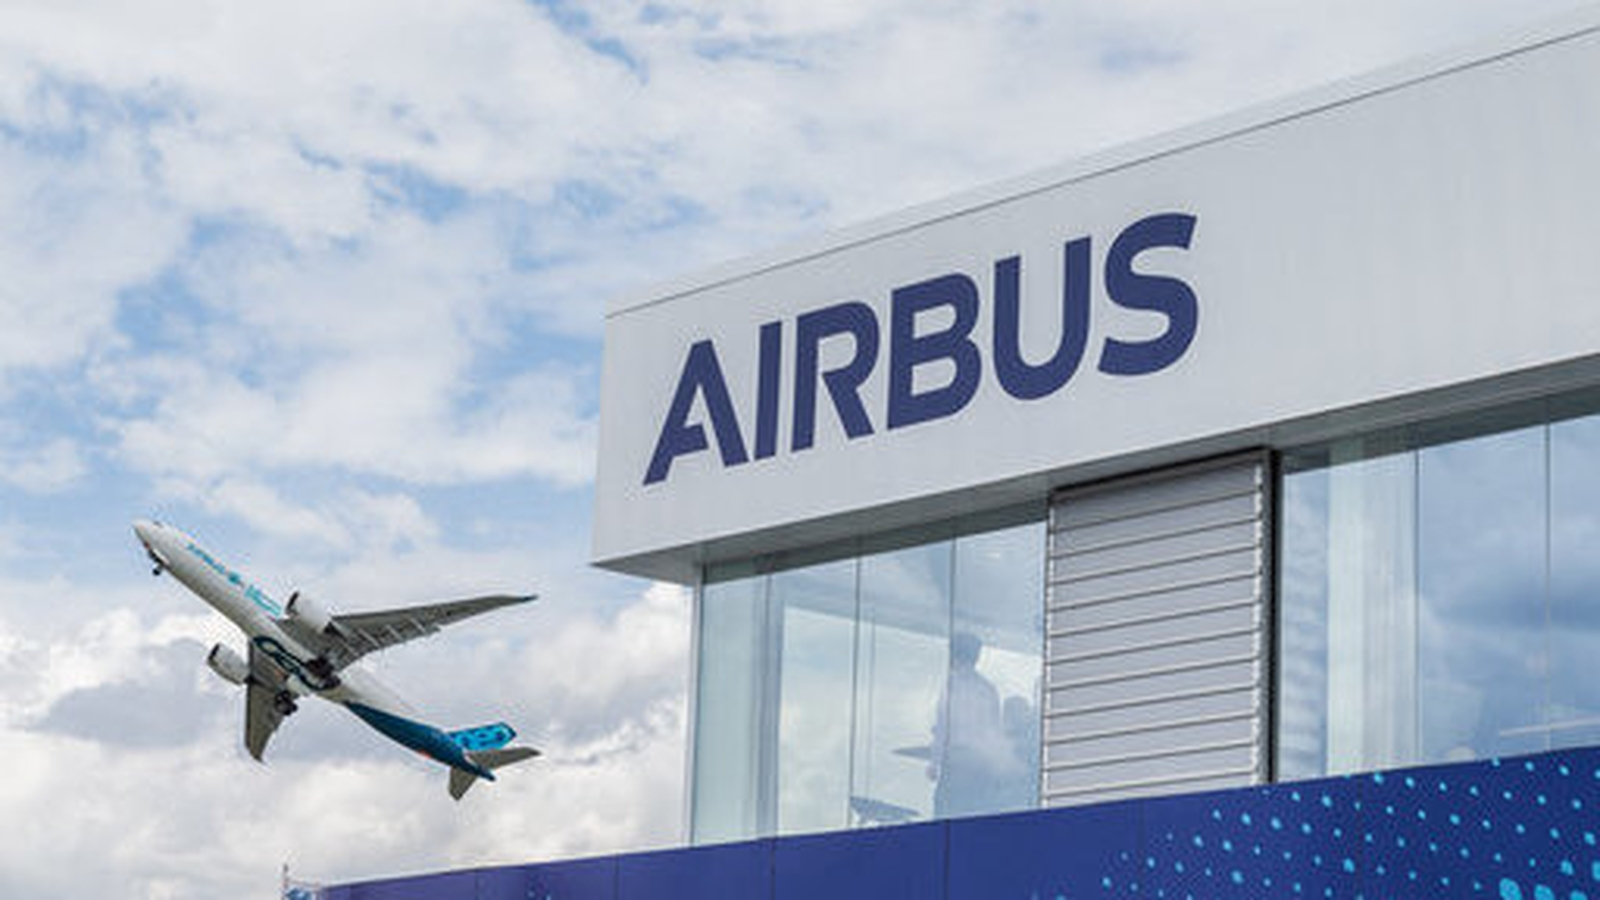 Airbus employees in Spain plan a strike